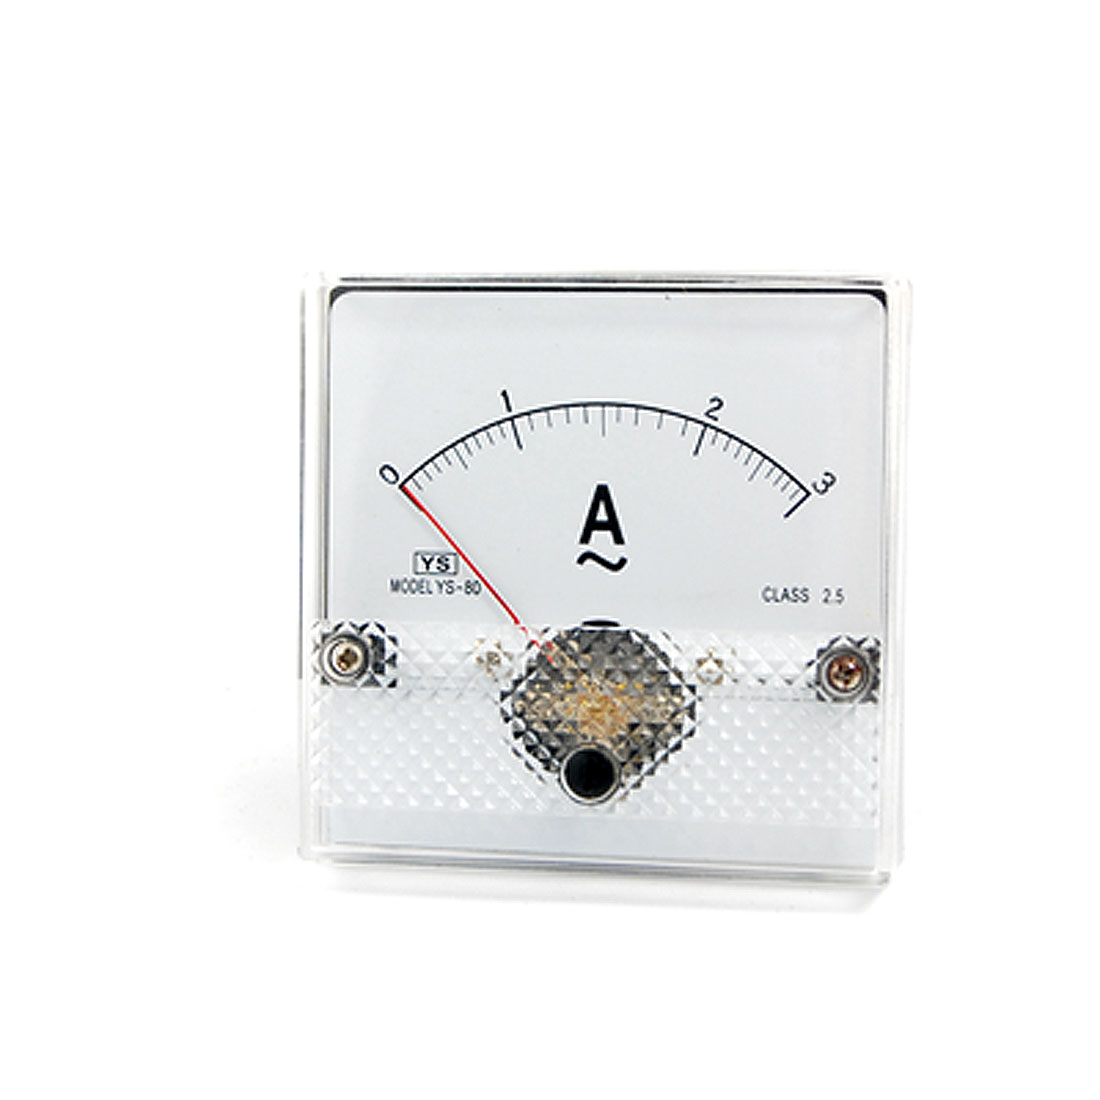 AC 0-3A Plastic Housed Analog Panel Meter Ammeter YS-80